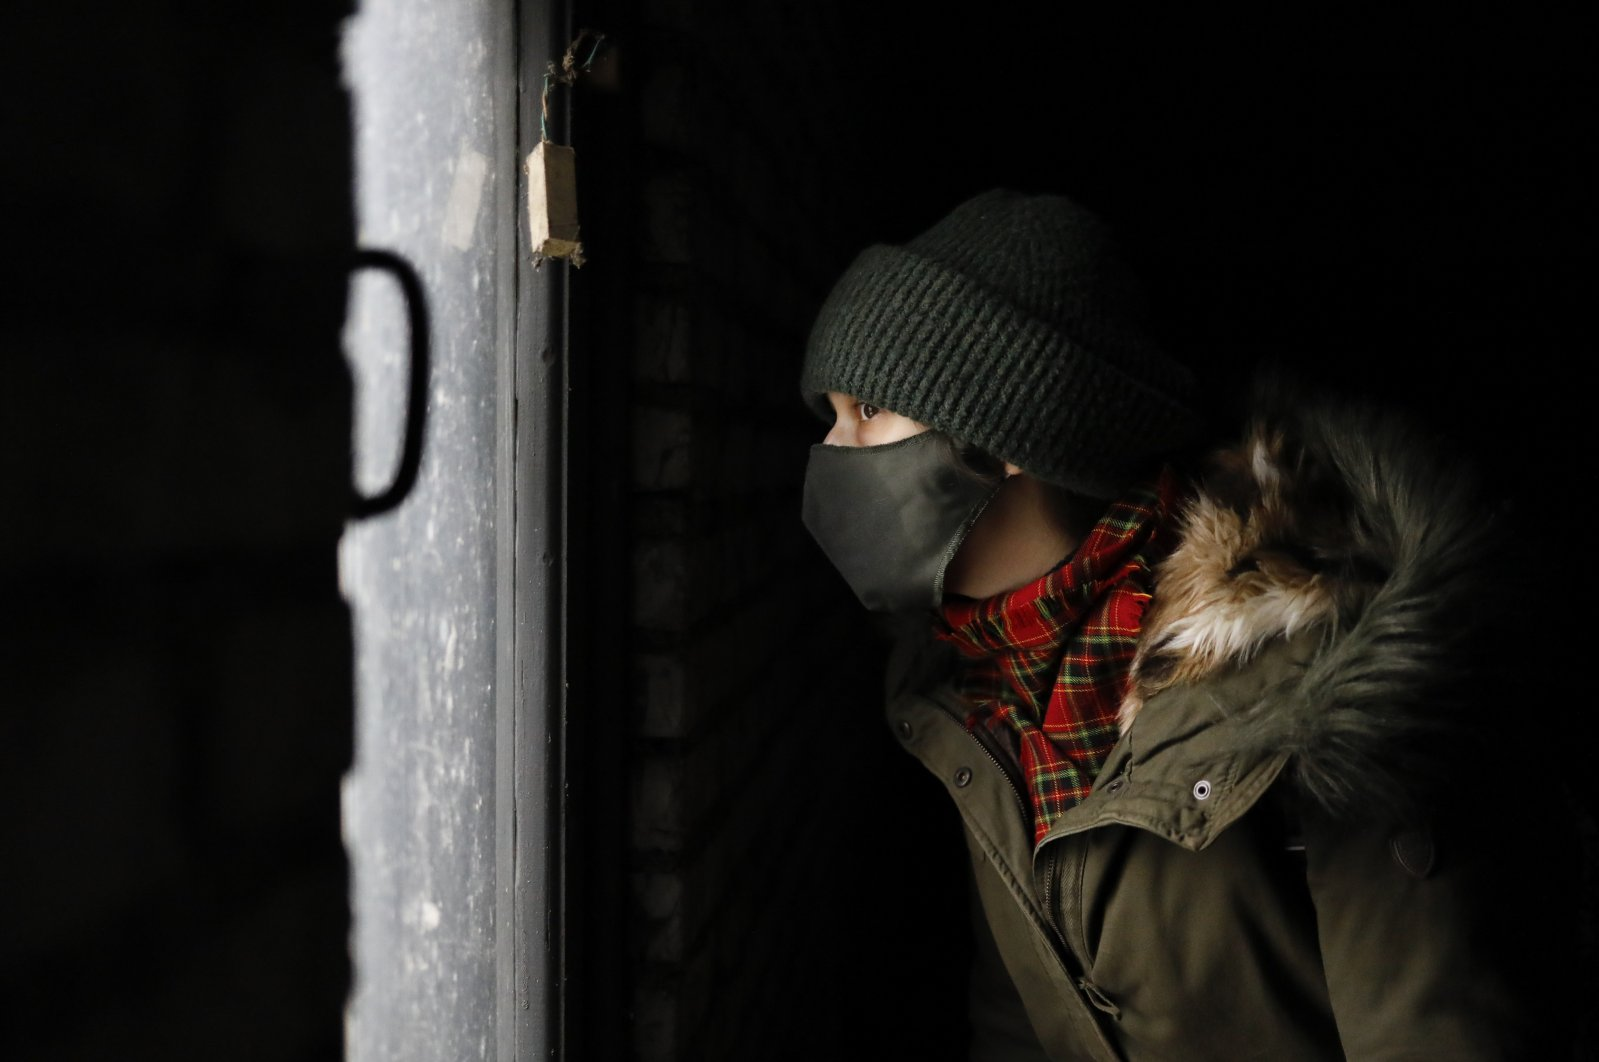 A young demonstrator wearing a face mask to help curb the spread of the coronavirus looks out of a dark garage where he is hiding from the police during an opposition rally to protest the official presidential election results in Minsk, Belarus, Dec. 13, 2020.  Crowds of people took to the streets of the Belarusian capital on Sunday, in a traditional weekly protest against the country's authoritarian leader who won a sixth term in office in a disputed election. Small rallies were scattered around more than 70 different areas of Minsk. (AP Photo)